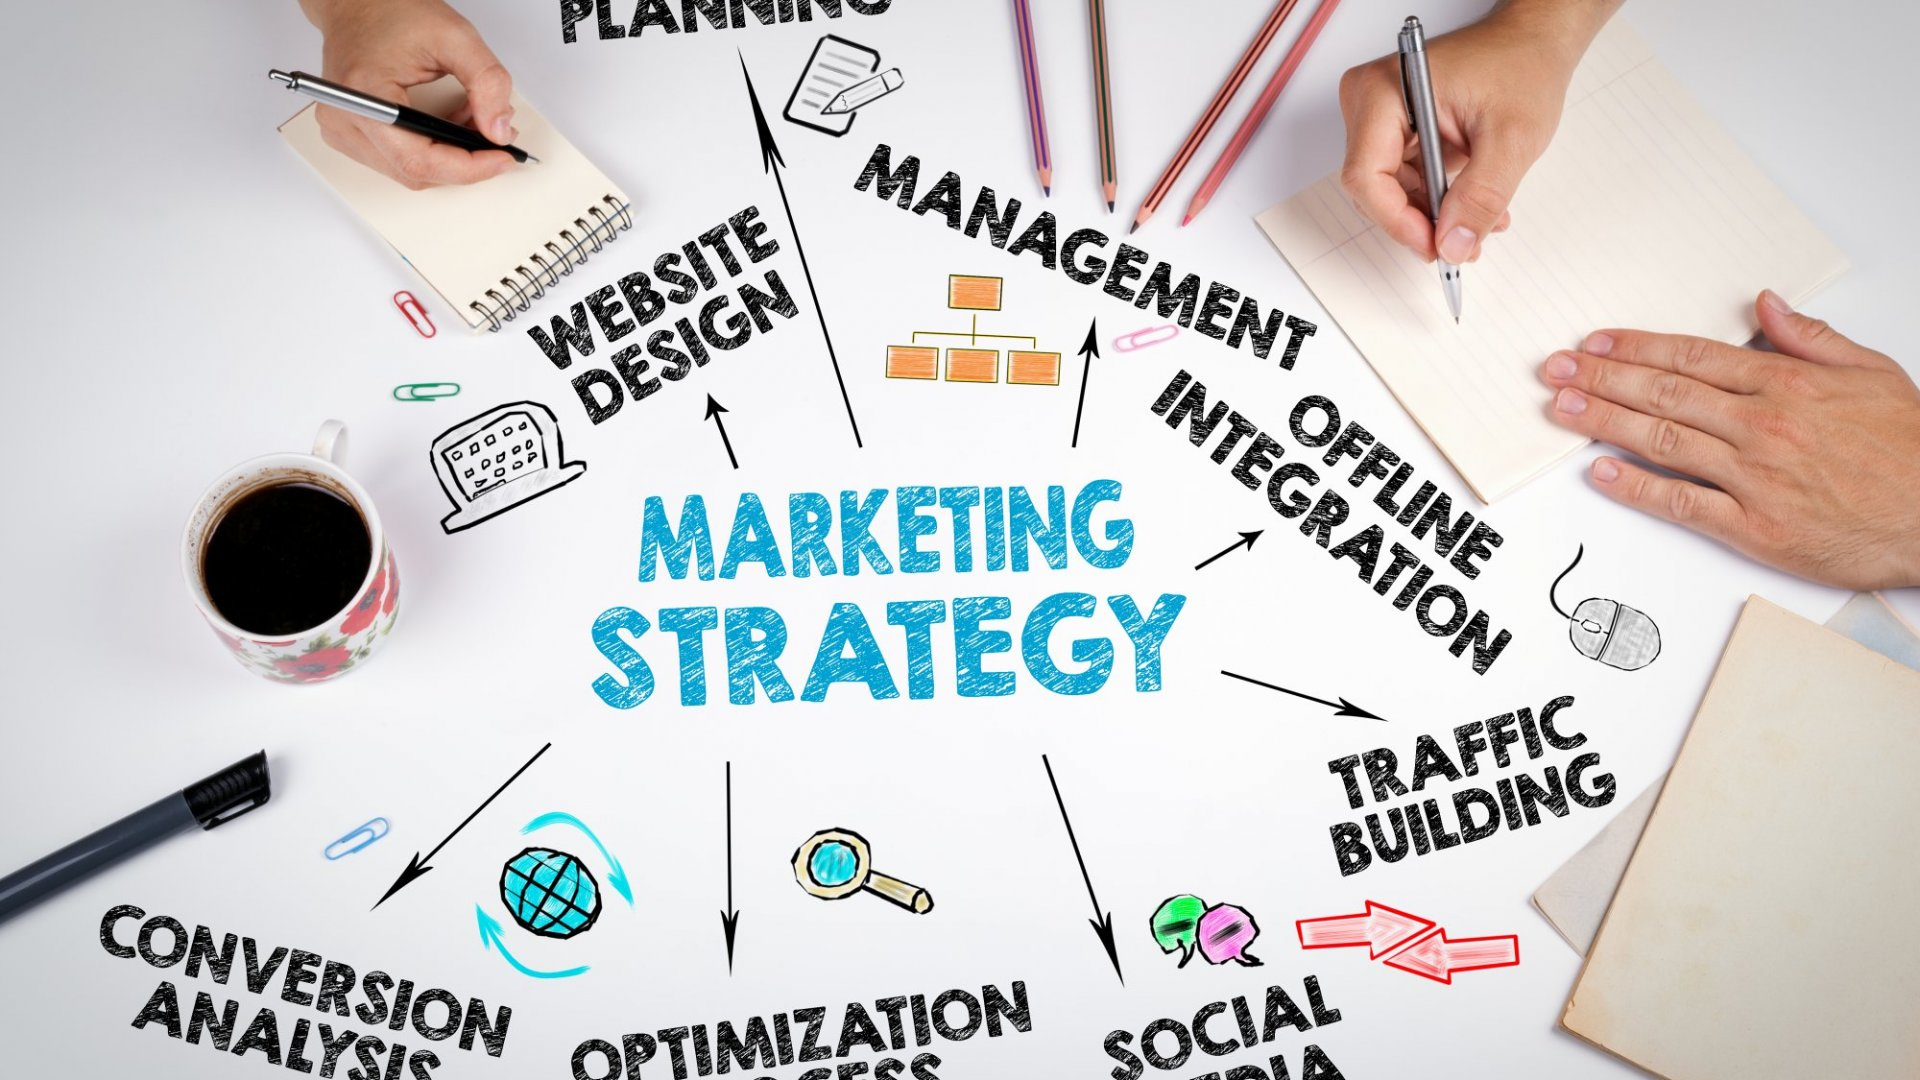 Marketers Need to Start Preparing for the End of the Digital Age and the New Era of Innovation